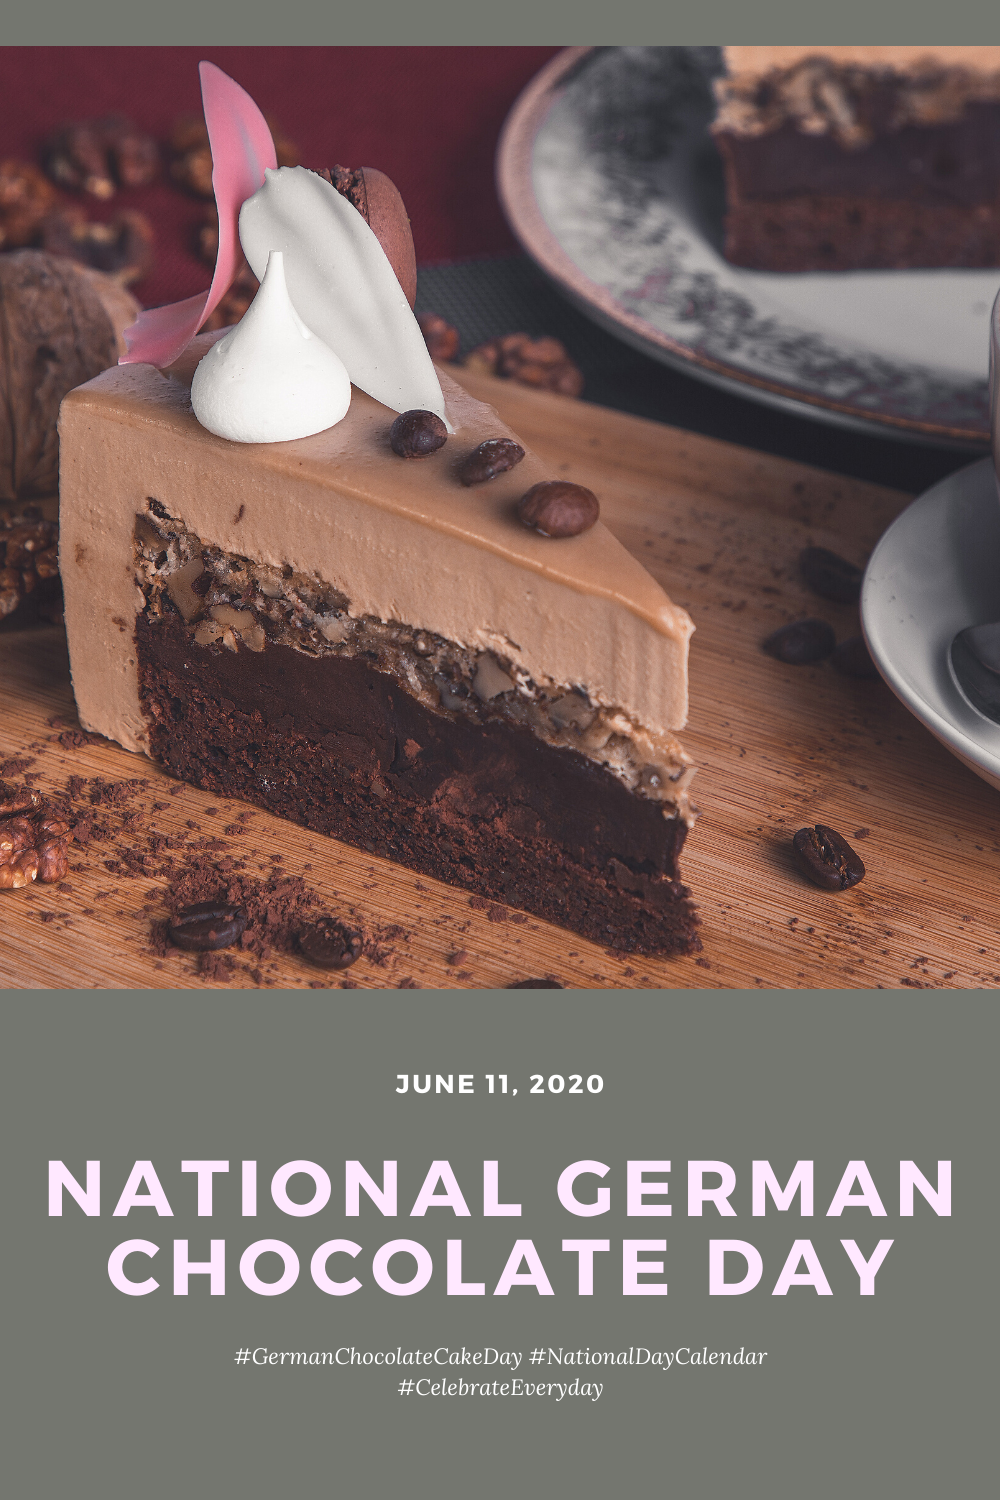 National German Chocolate Cake Day In 2020 Chocolate Baking German Chocolate German Chocolate Cake